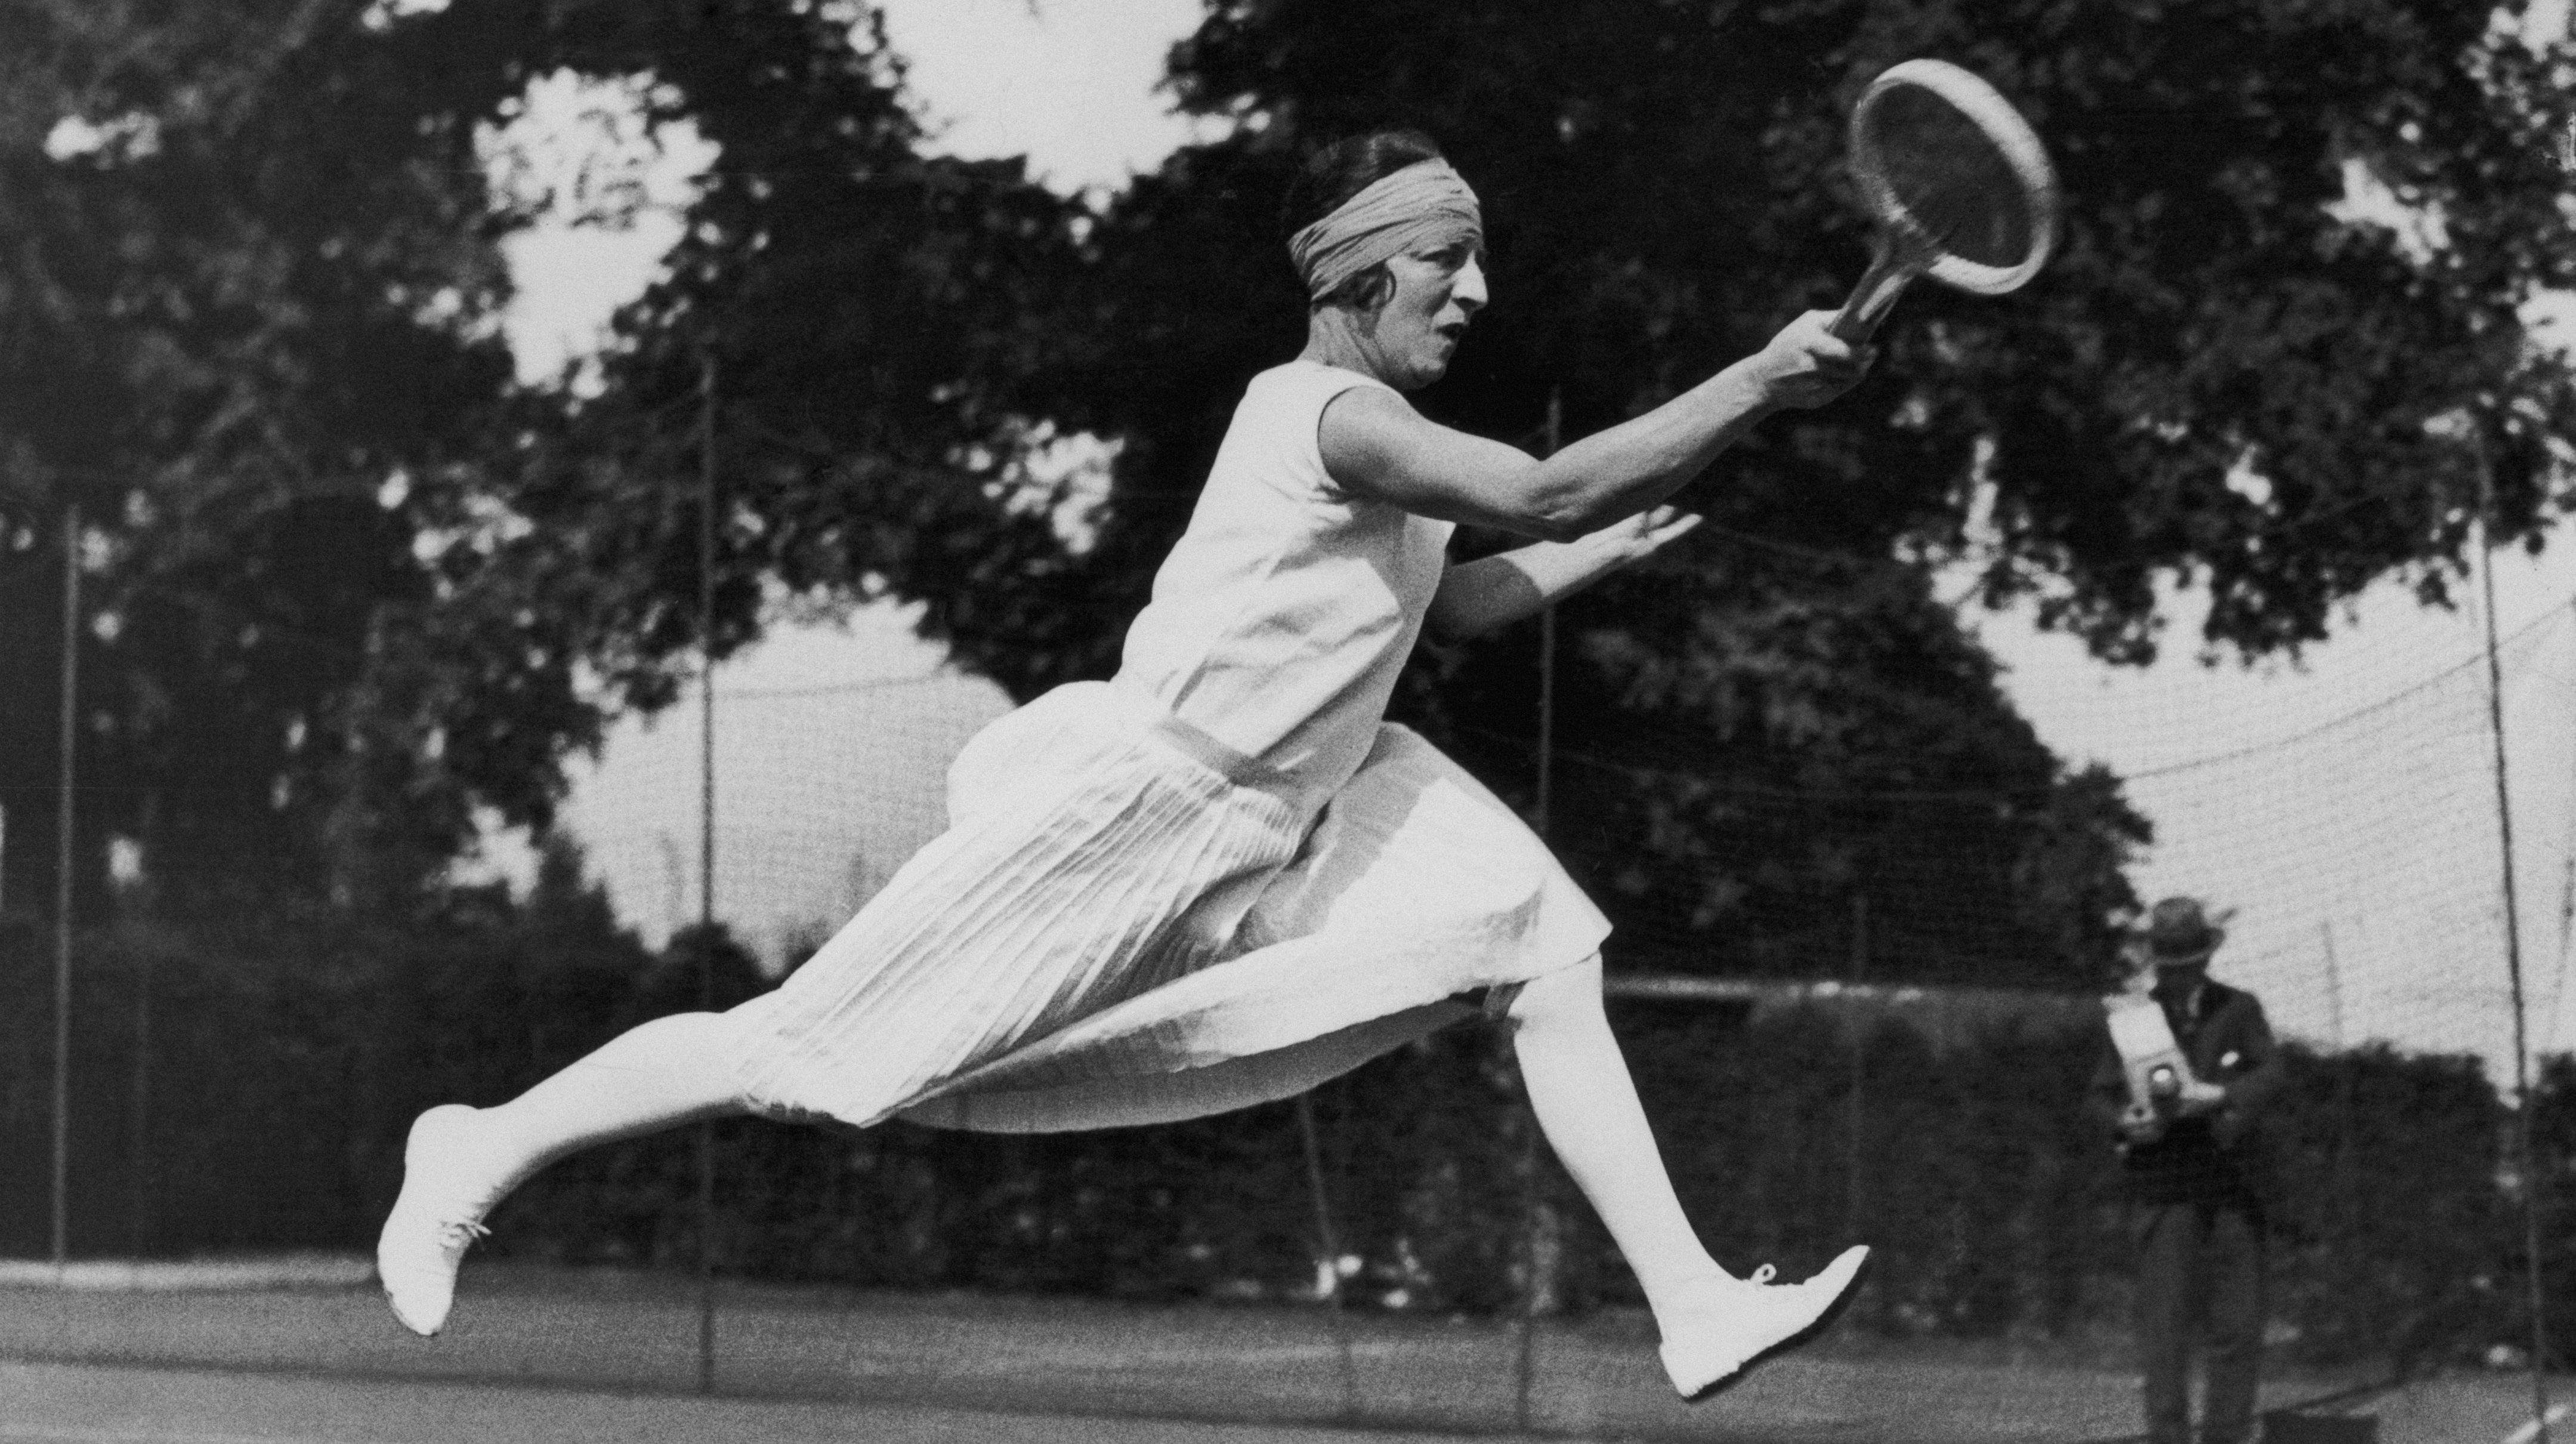 The 100-year legacy of Suzanne Lenglen